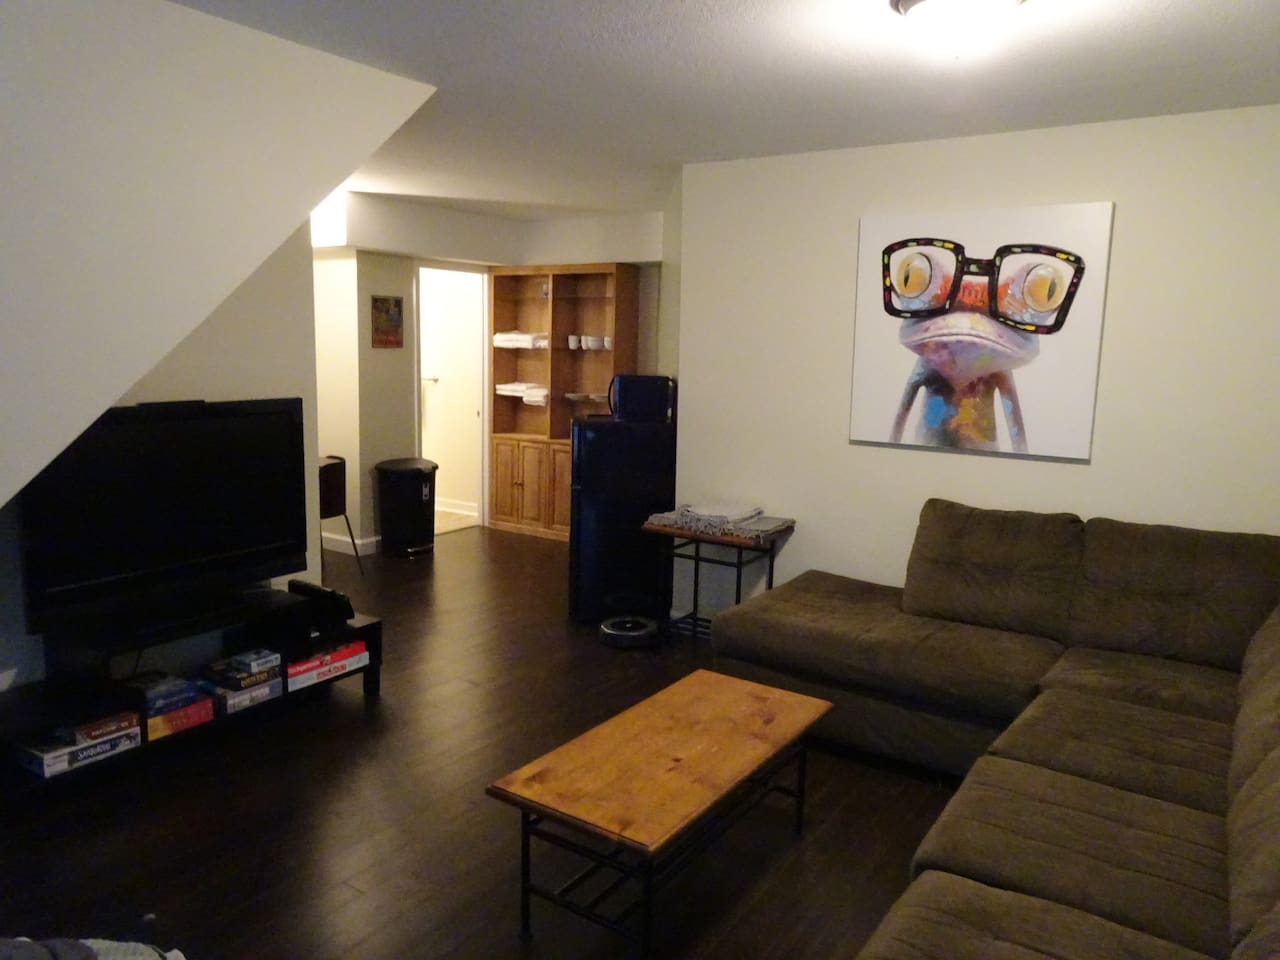 The main living space, complete with some board games to play!   There is no cable on the TV, but it is set up with Prime video and Netflix.